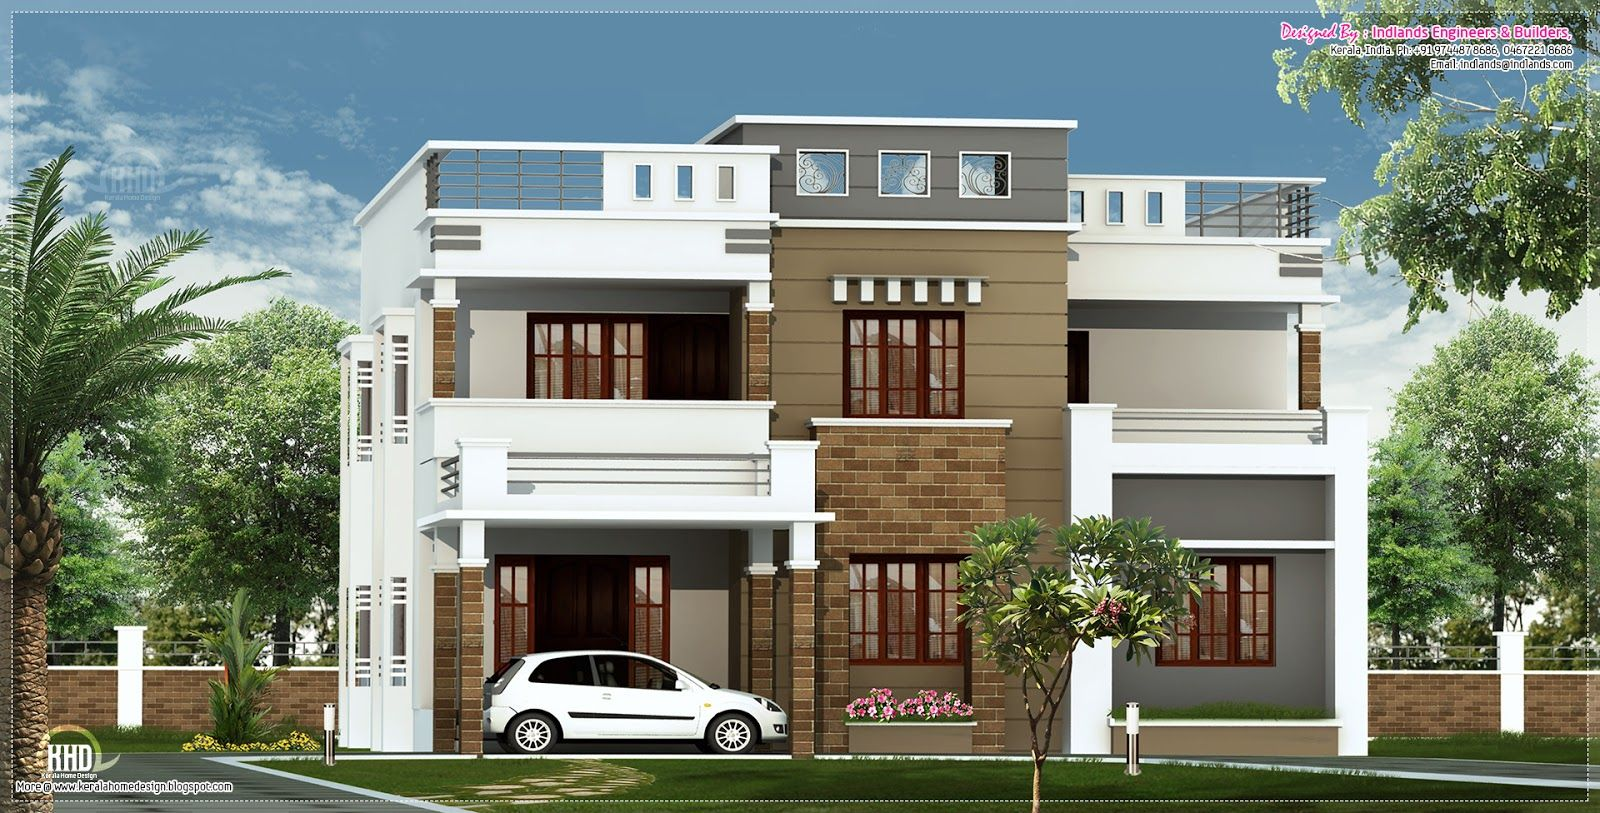 4 bedroom house with roof terrace plans google search for Simple house front design